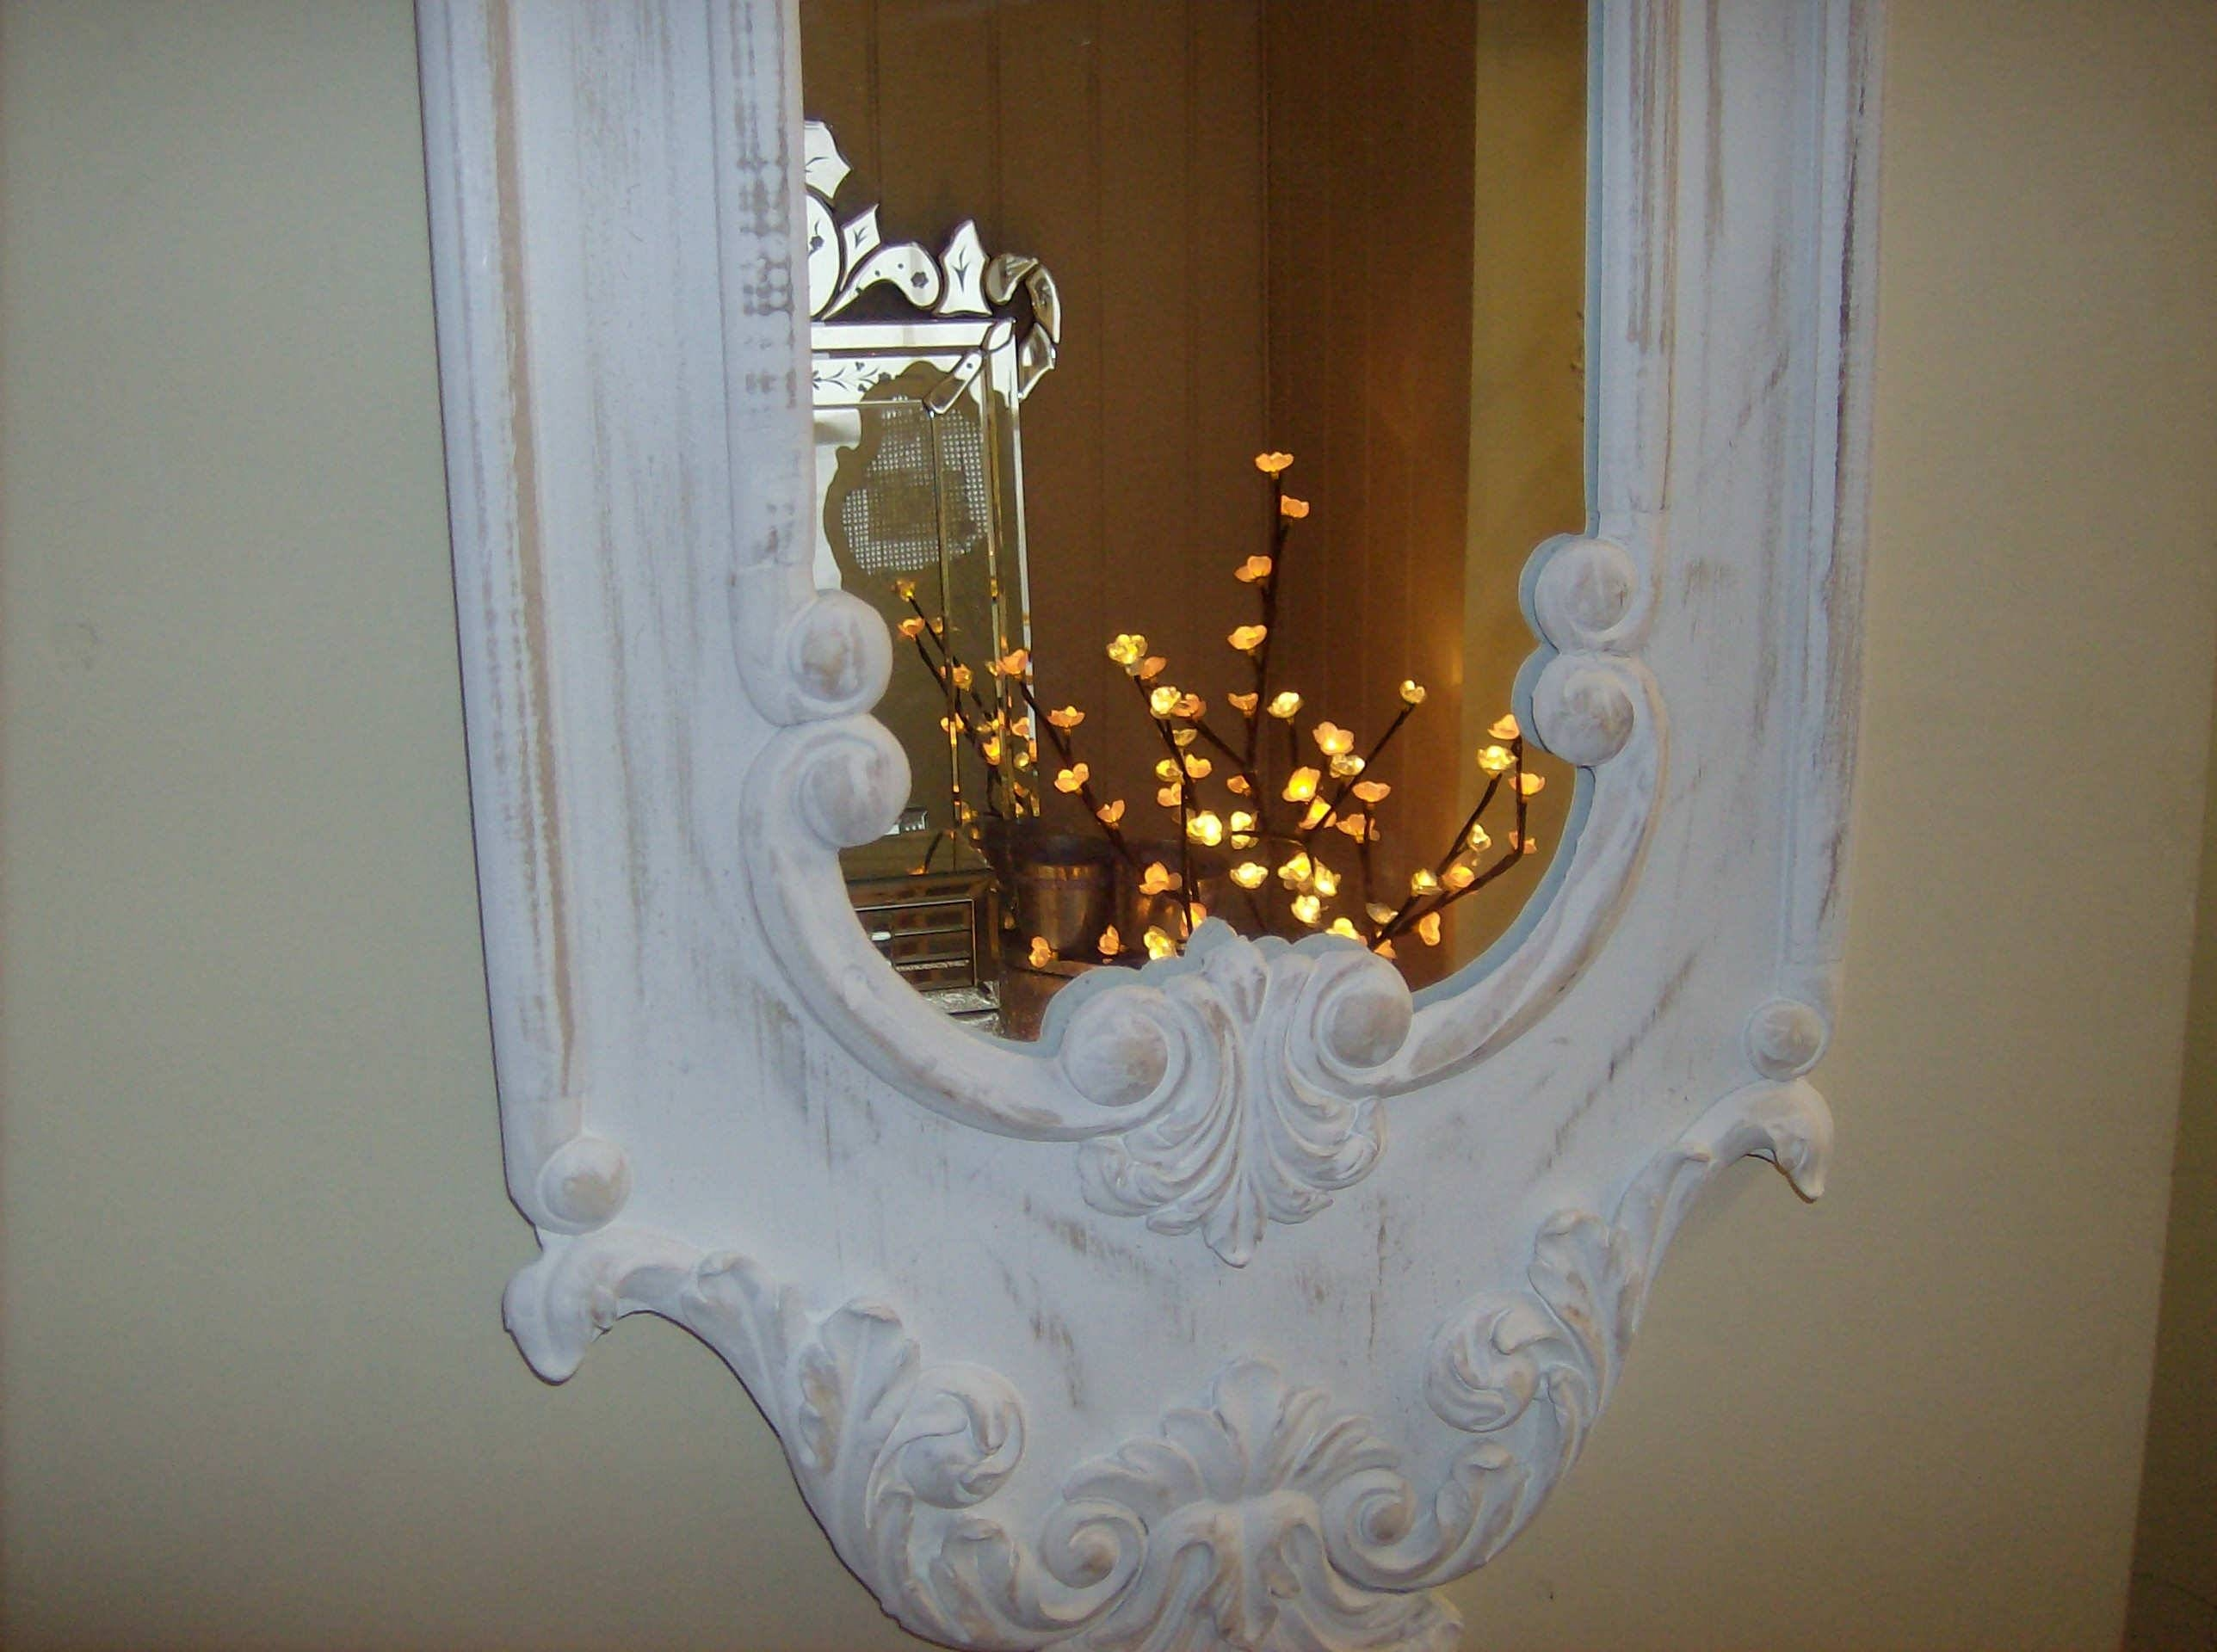 Cheap Shabby Chic Mirrors Uk: The Paper Mulberry: Perfectly Pale within Cheap Shabby Chic Mirrors (Image 7 of 15)